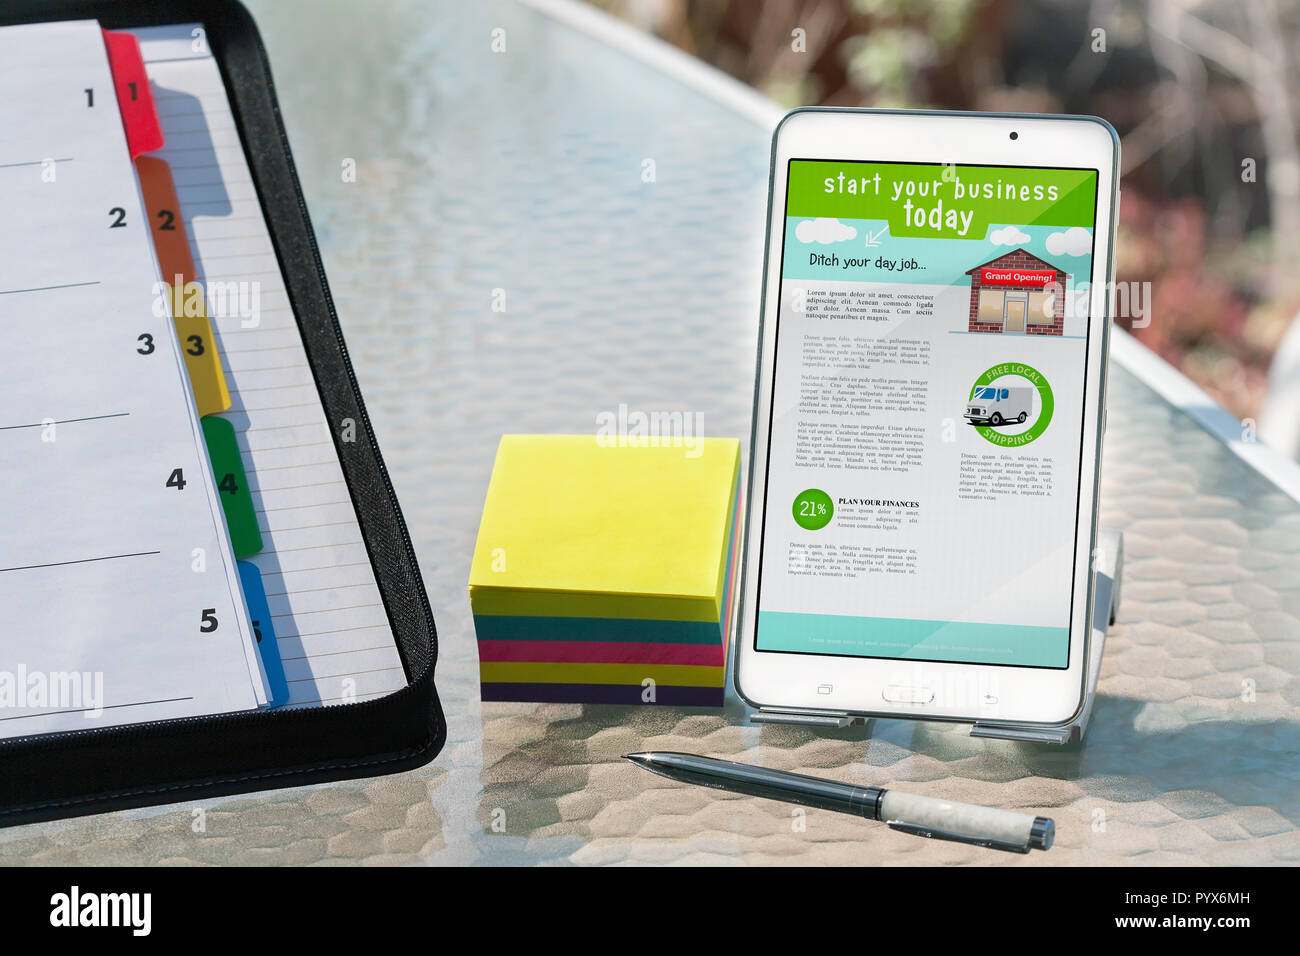 Business planning in outdoor setting with notes, scheduling folder and mobile phone with home based business information to get started today. - Stock Image